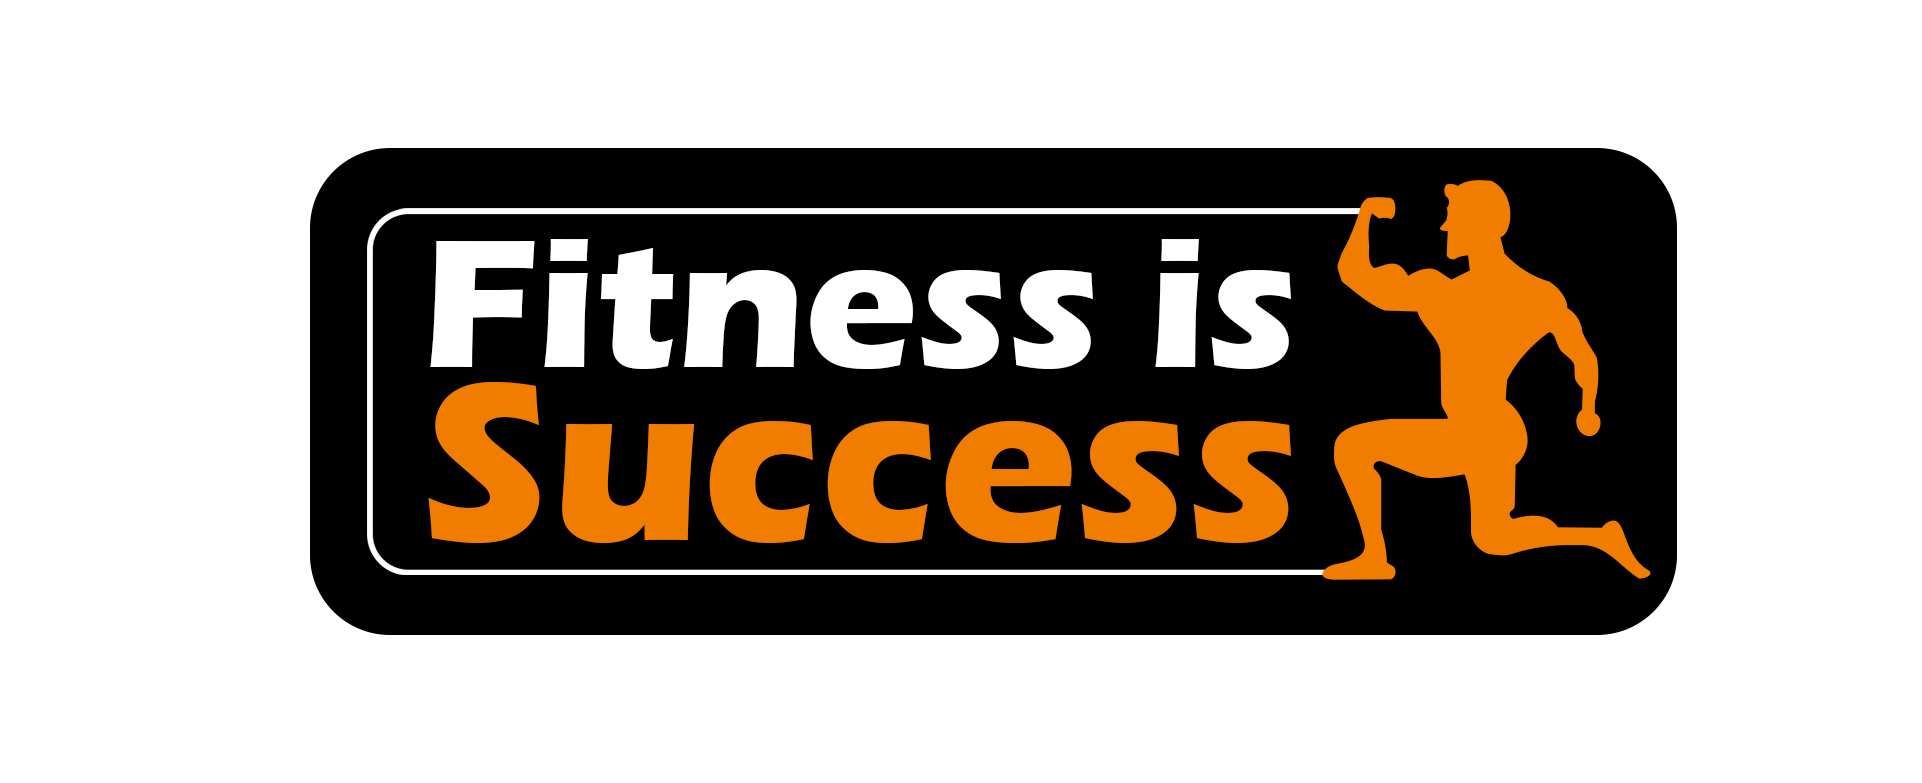 Homepage 5 | Fitness is Success